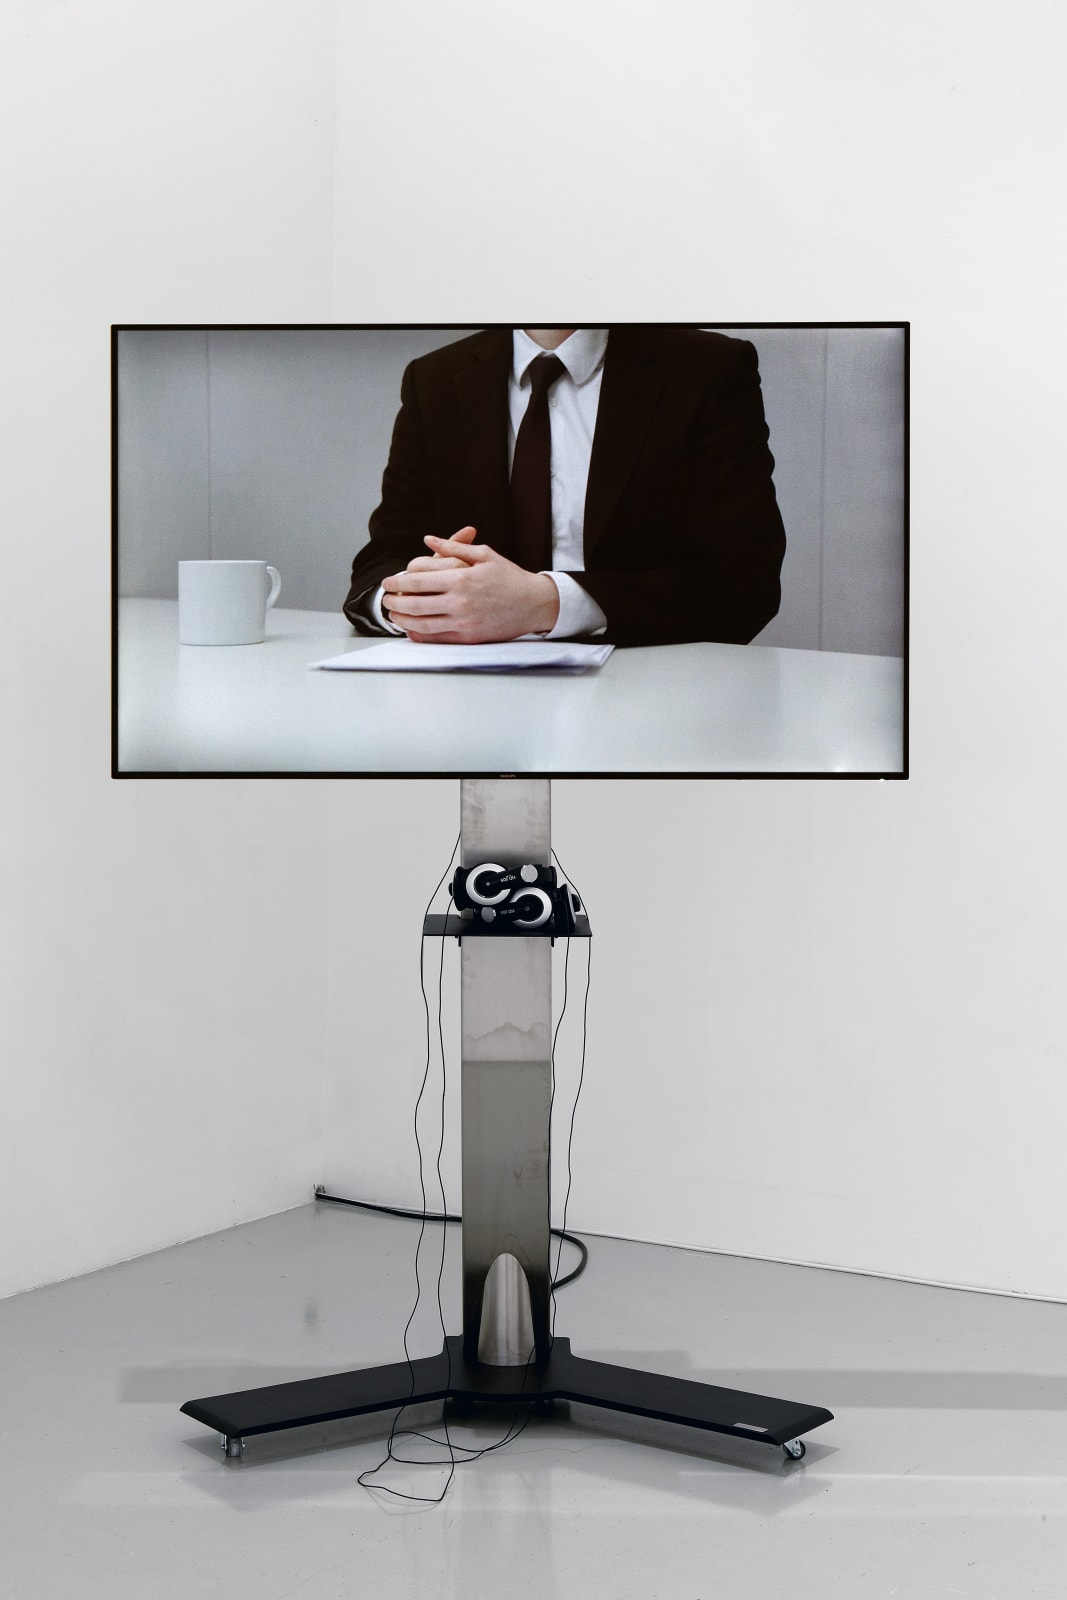 Cally Spooner, Off Camera Dialogue, 2014, Three channel HD video, Duration: 6min. Courtesy: Collection Frac Franche-Comté © Cally Spooner, credit photo Blaise Adilon